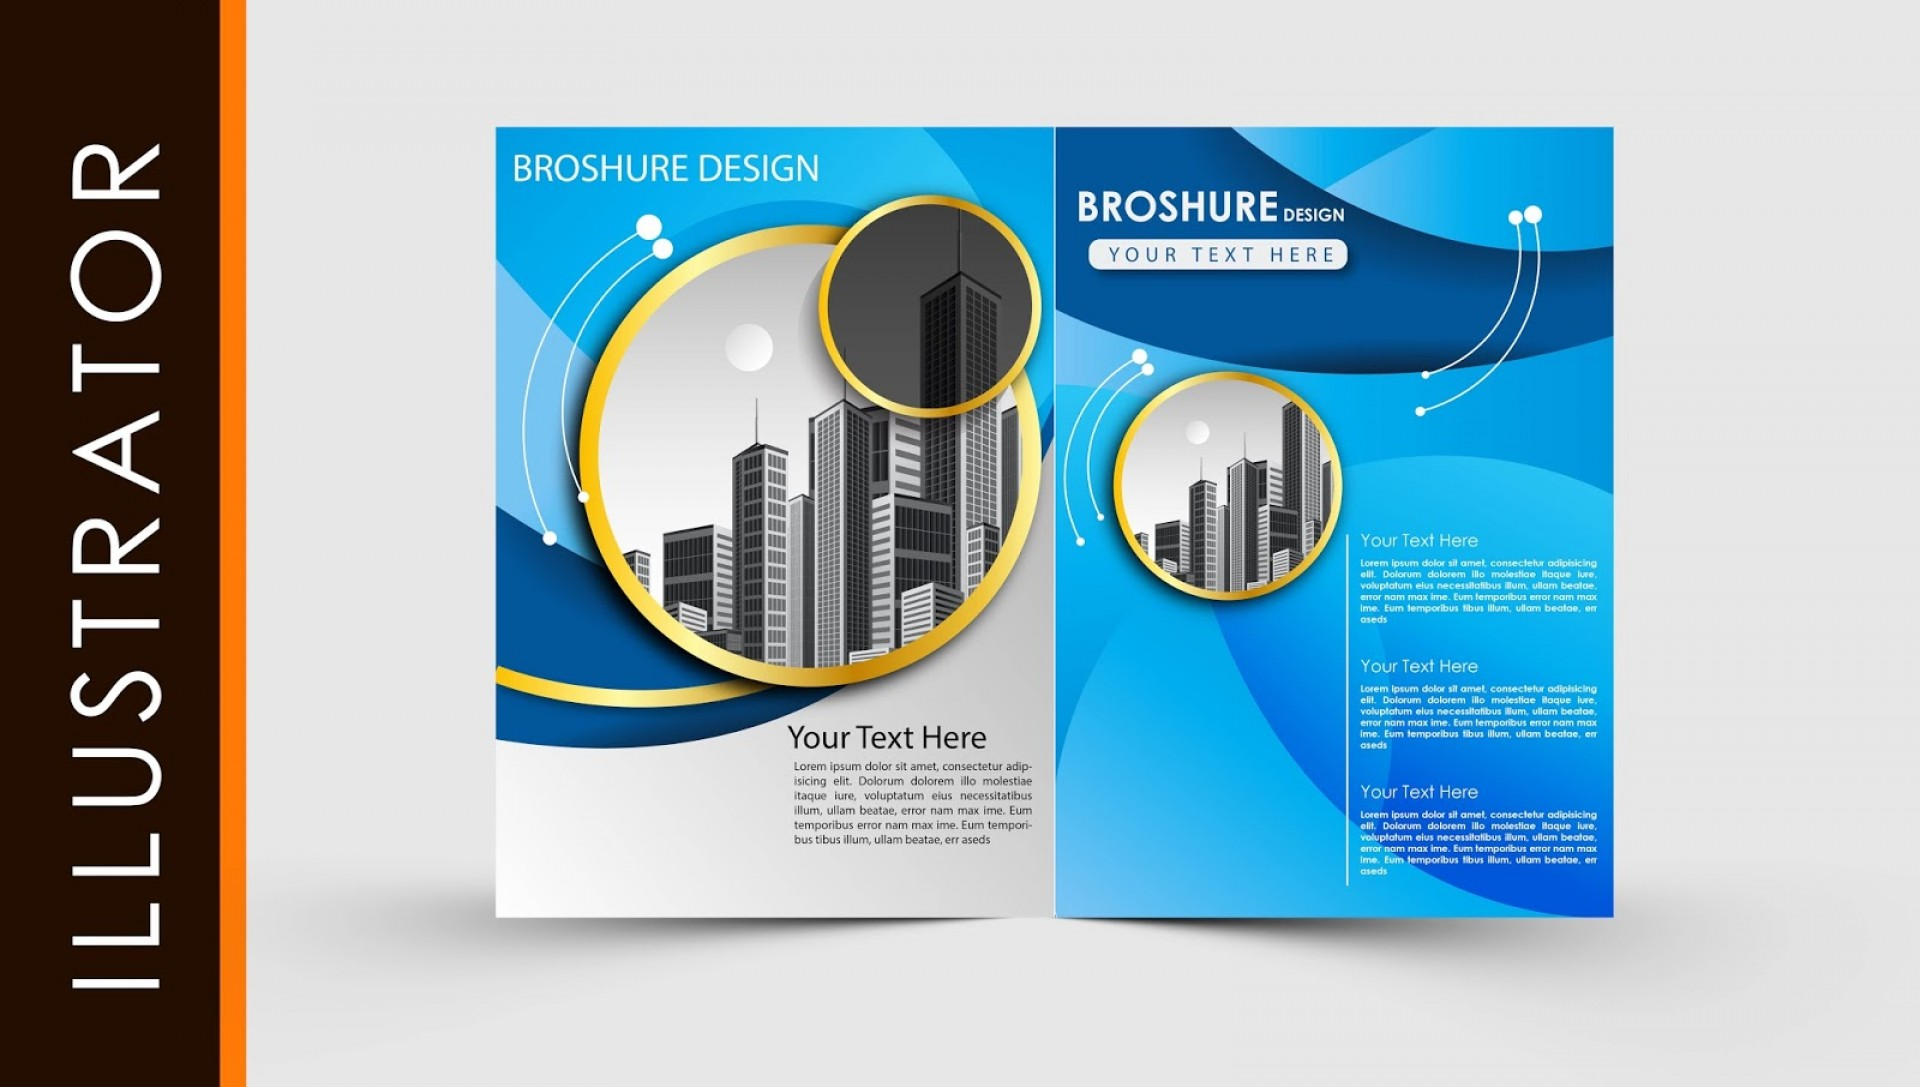 005 Magnificent Free Download Flyer Template Design  Templates Blank Leaflet Word Psd1920